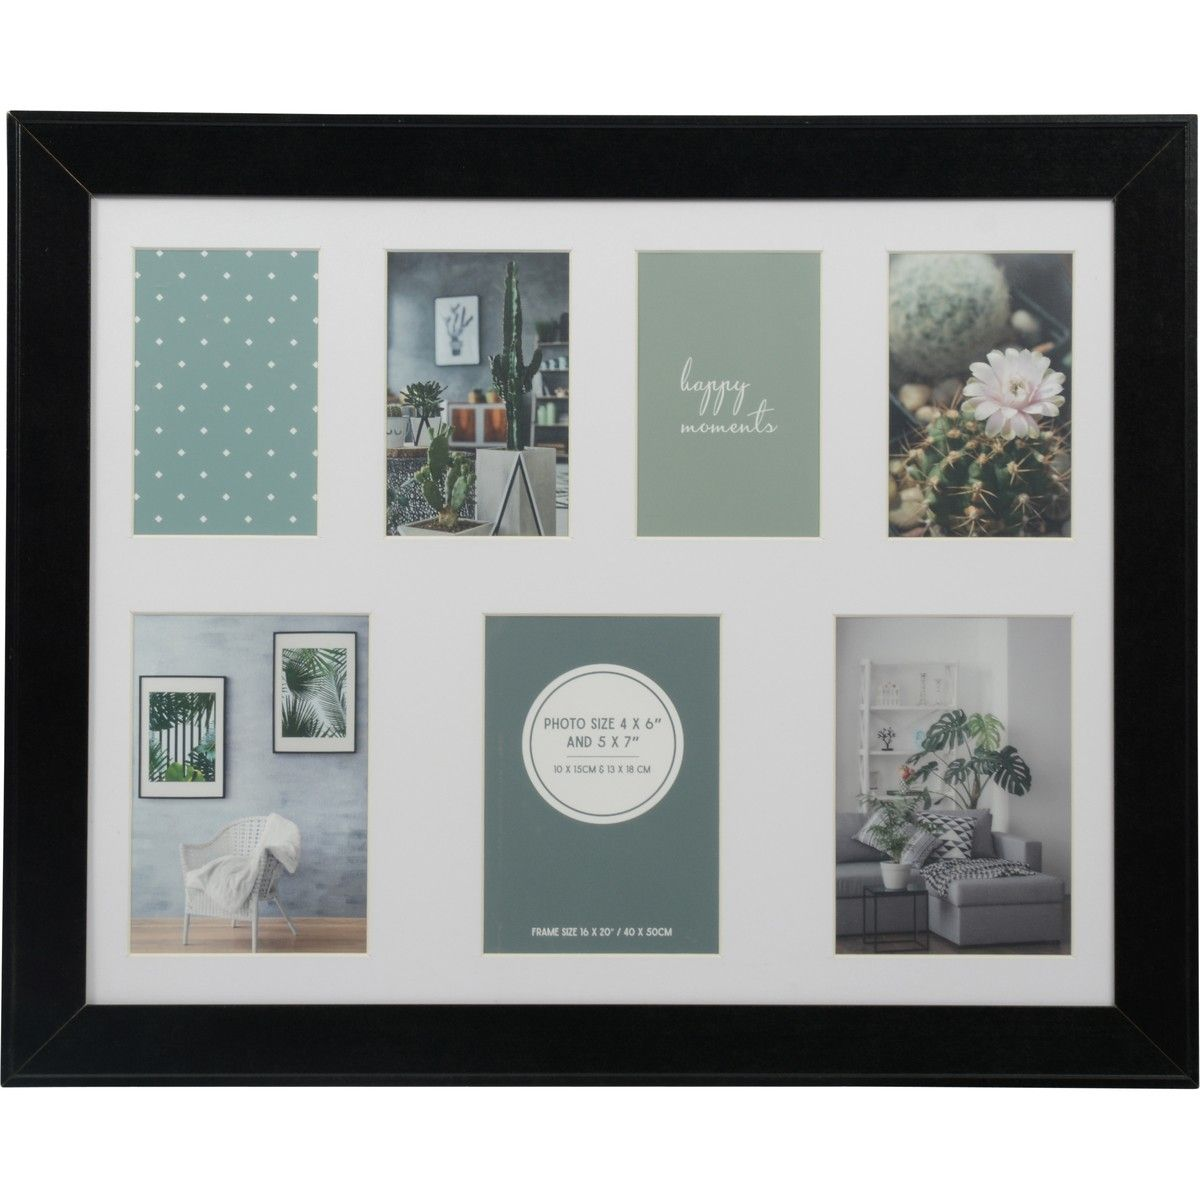 Design House 16 X 20 Inch M3 Photoframe Black Big W House Design Photo Frame Wall Display